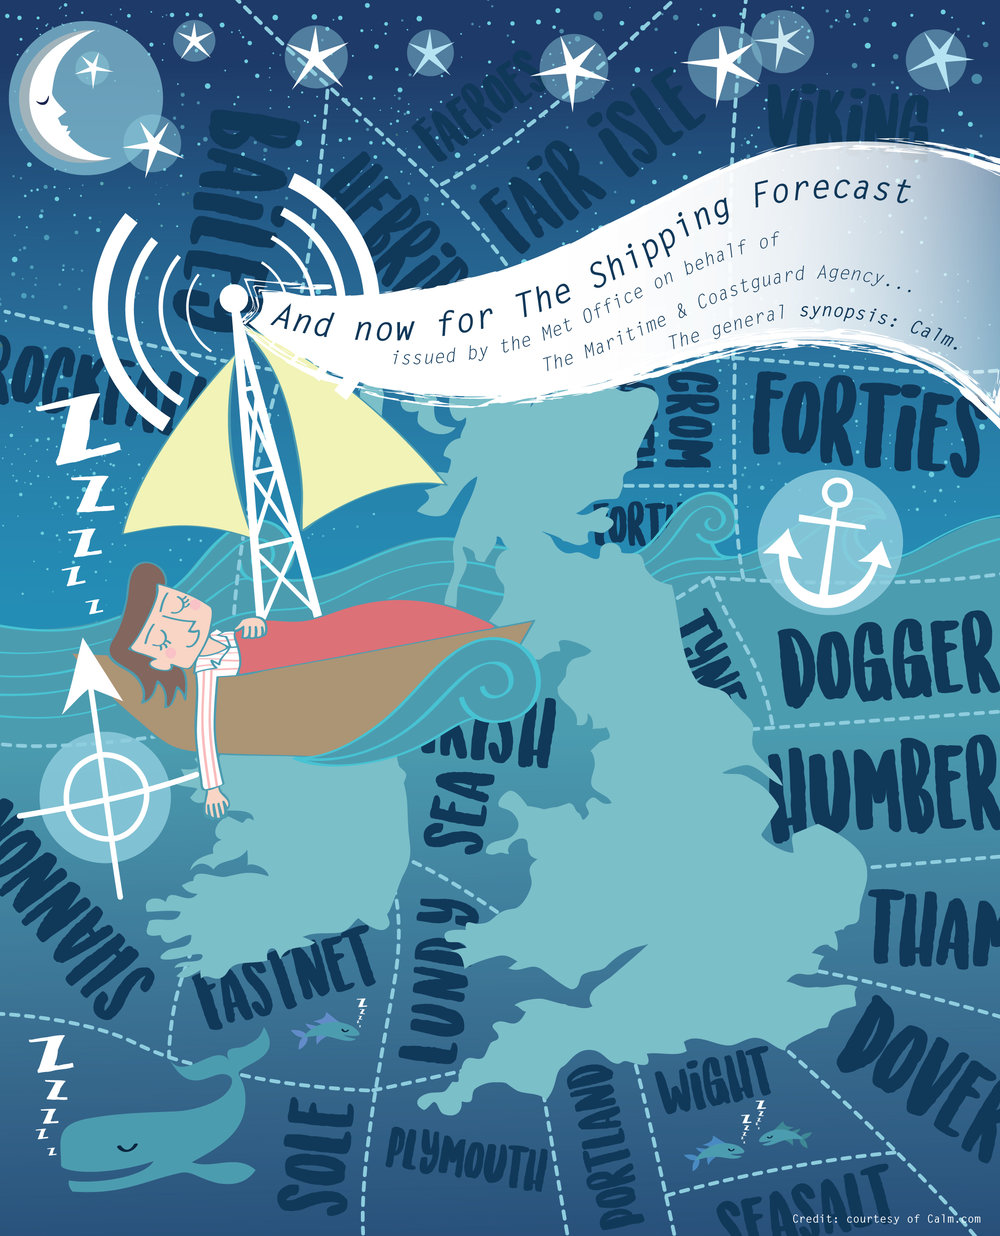 shipping forecast illustration.png